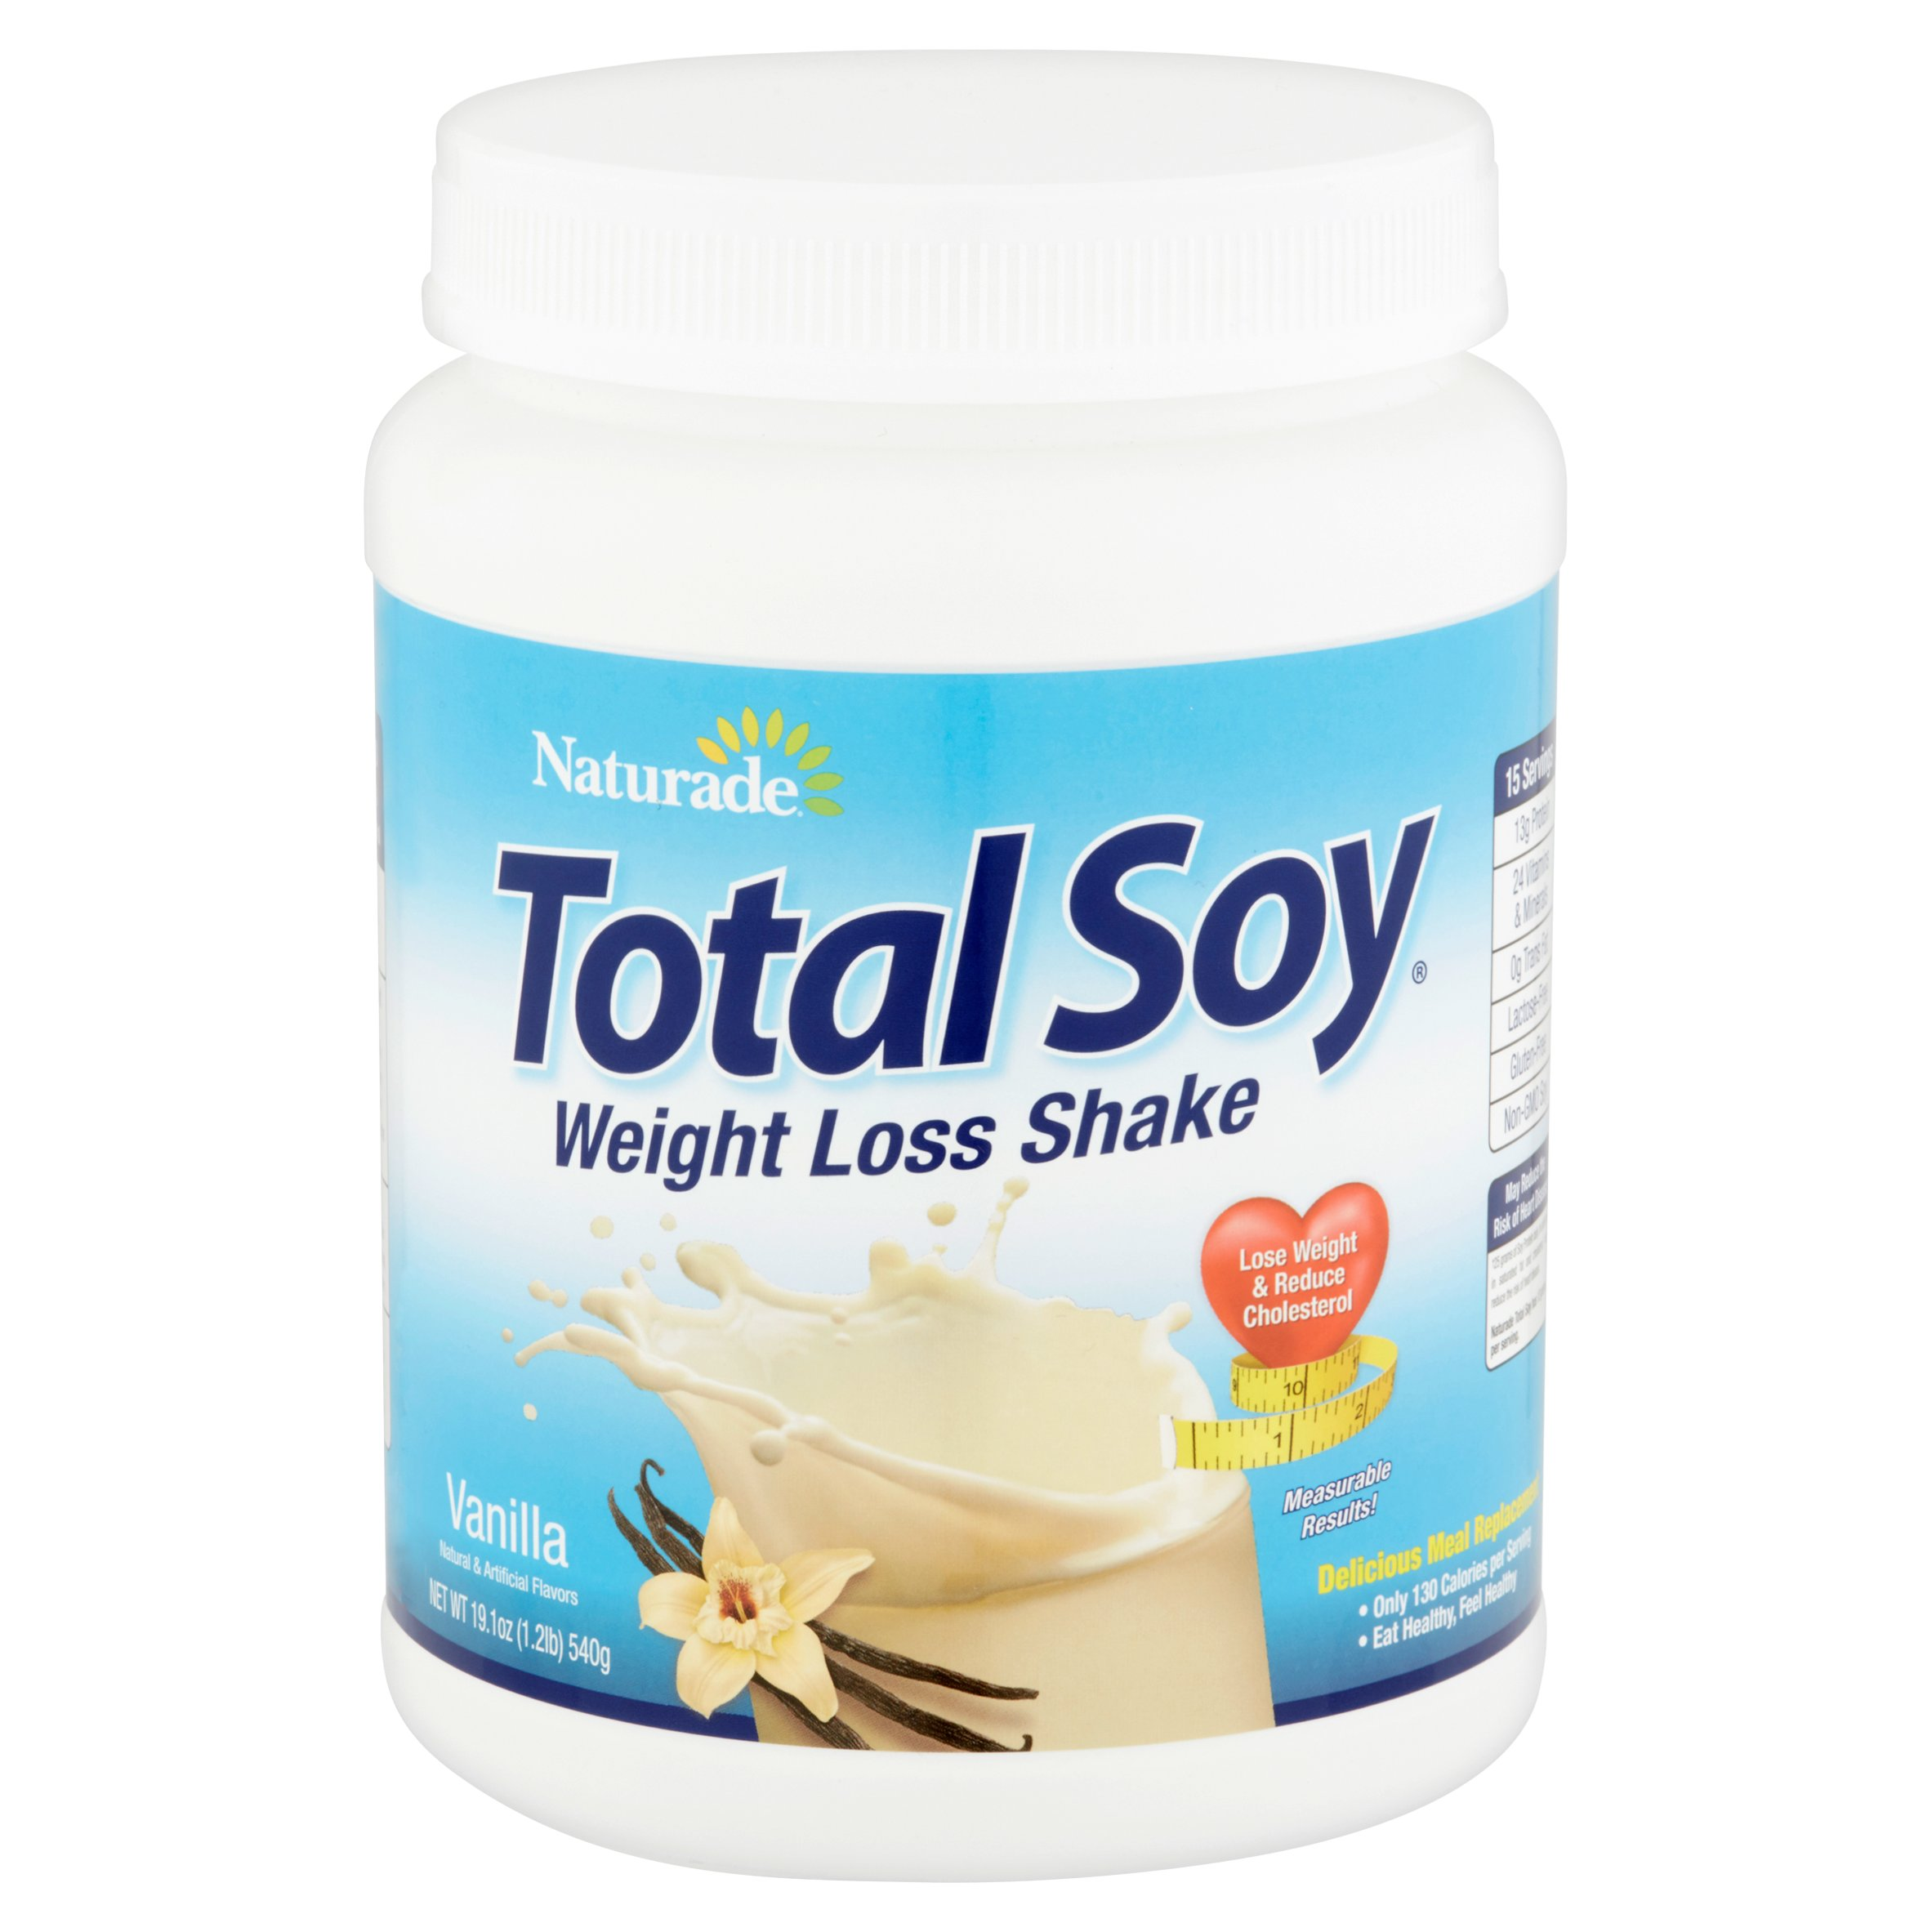 Naturade Total Soy Vanilla Weight Loss Shake, 19.1 oz